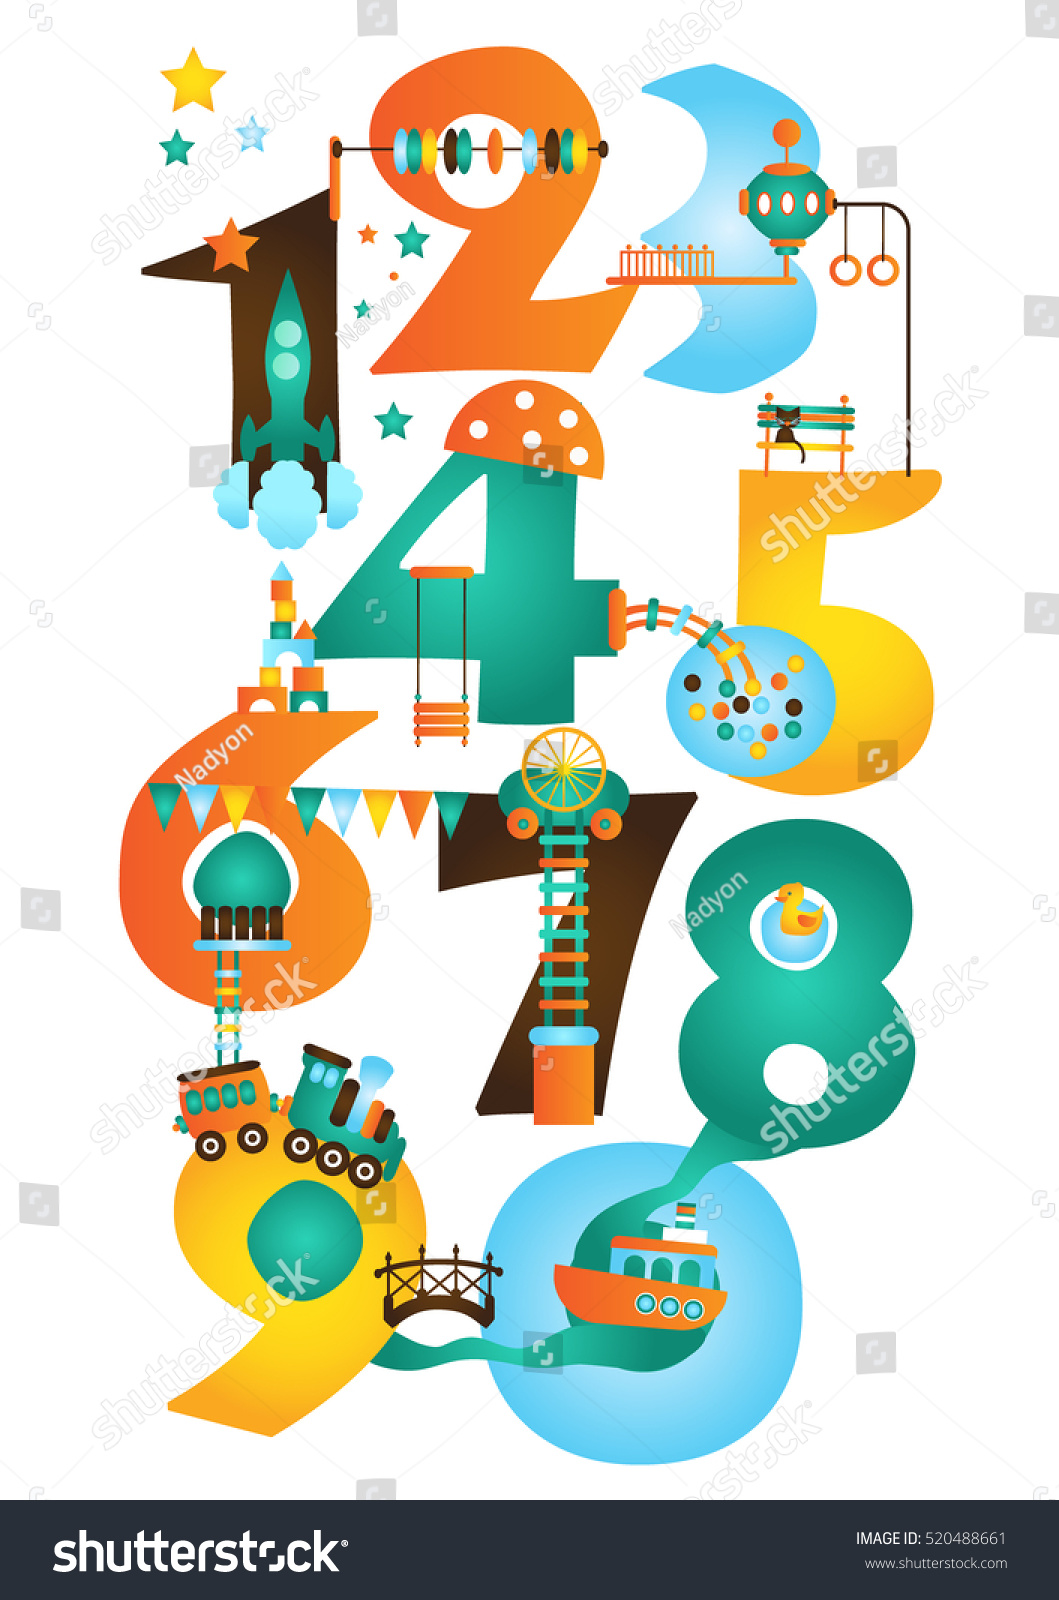 Play Learn Early Math Learn Numbers Stock Photo (Photo, Vector ...